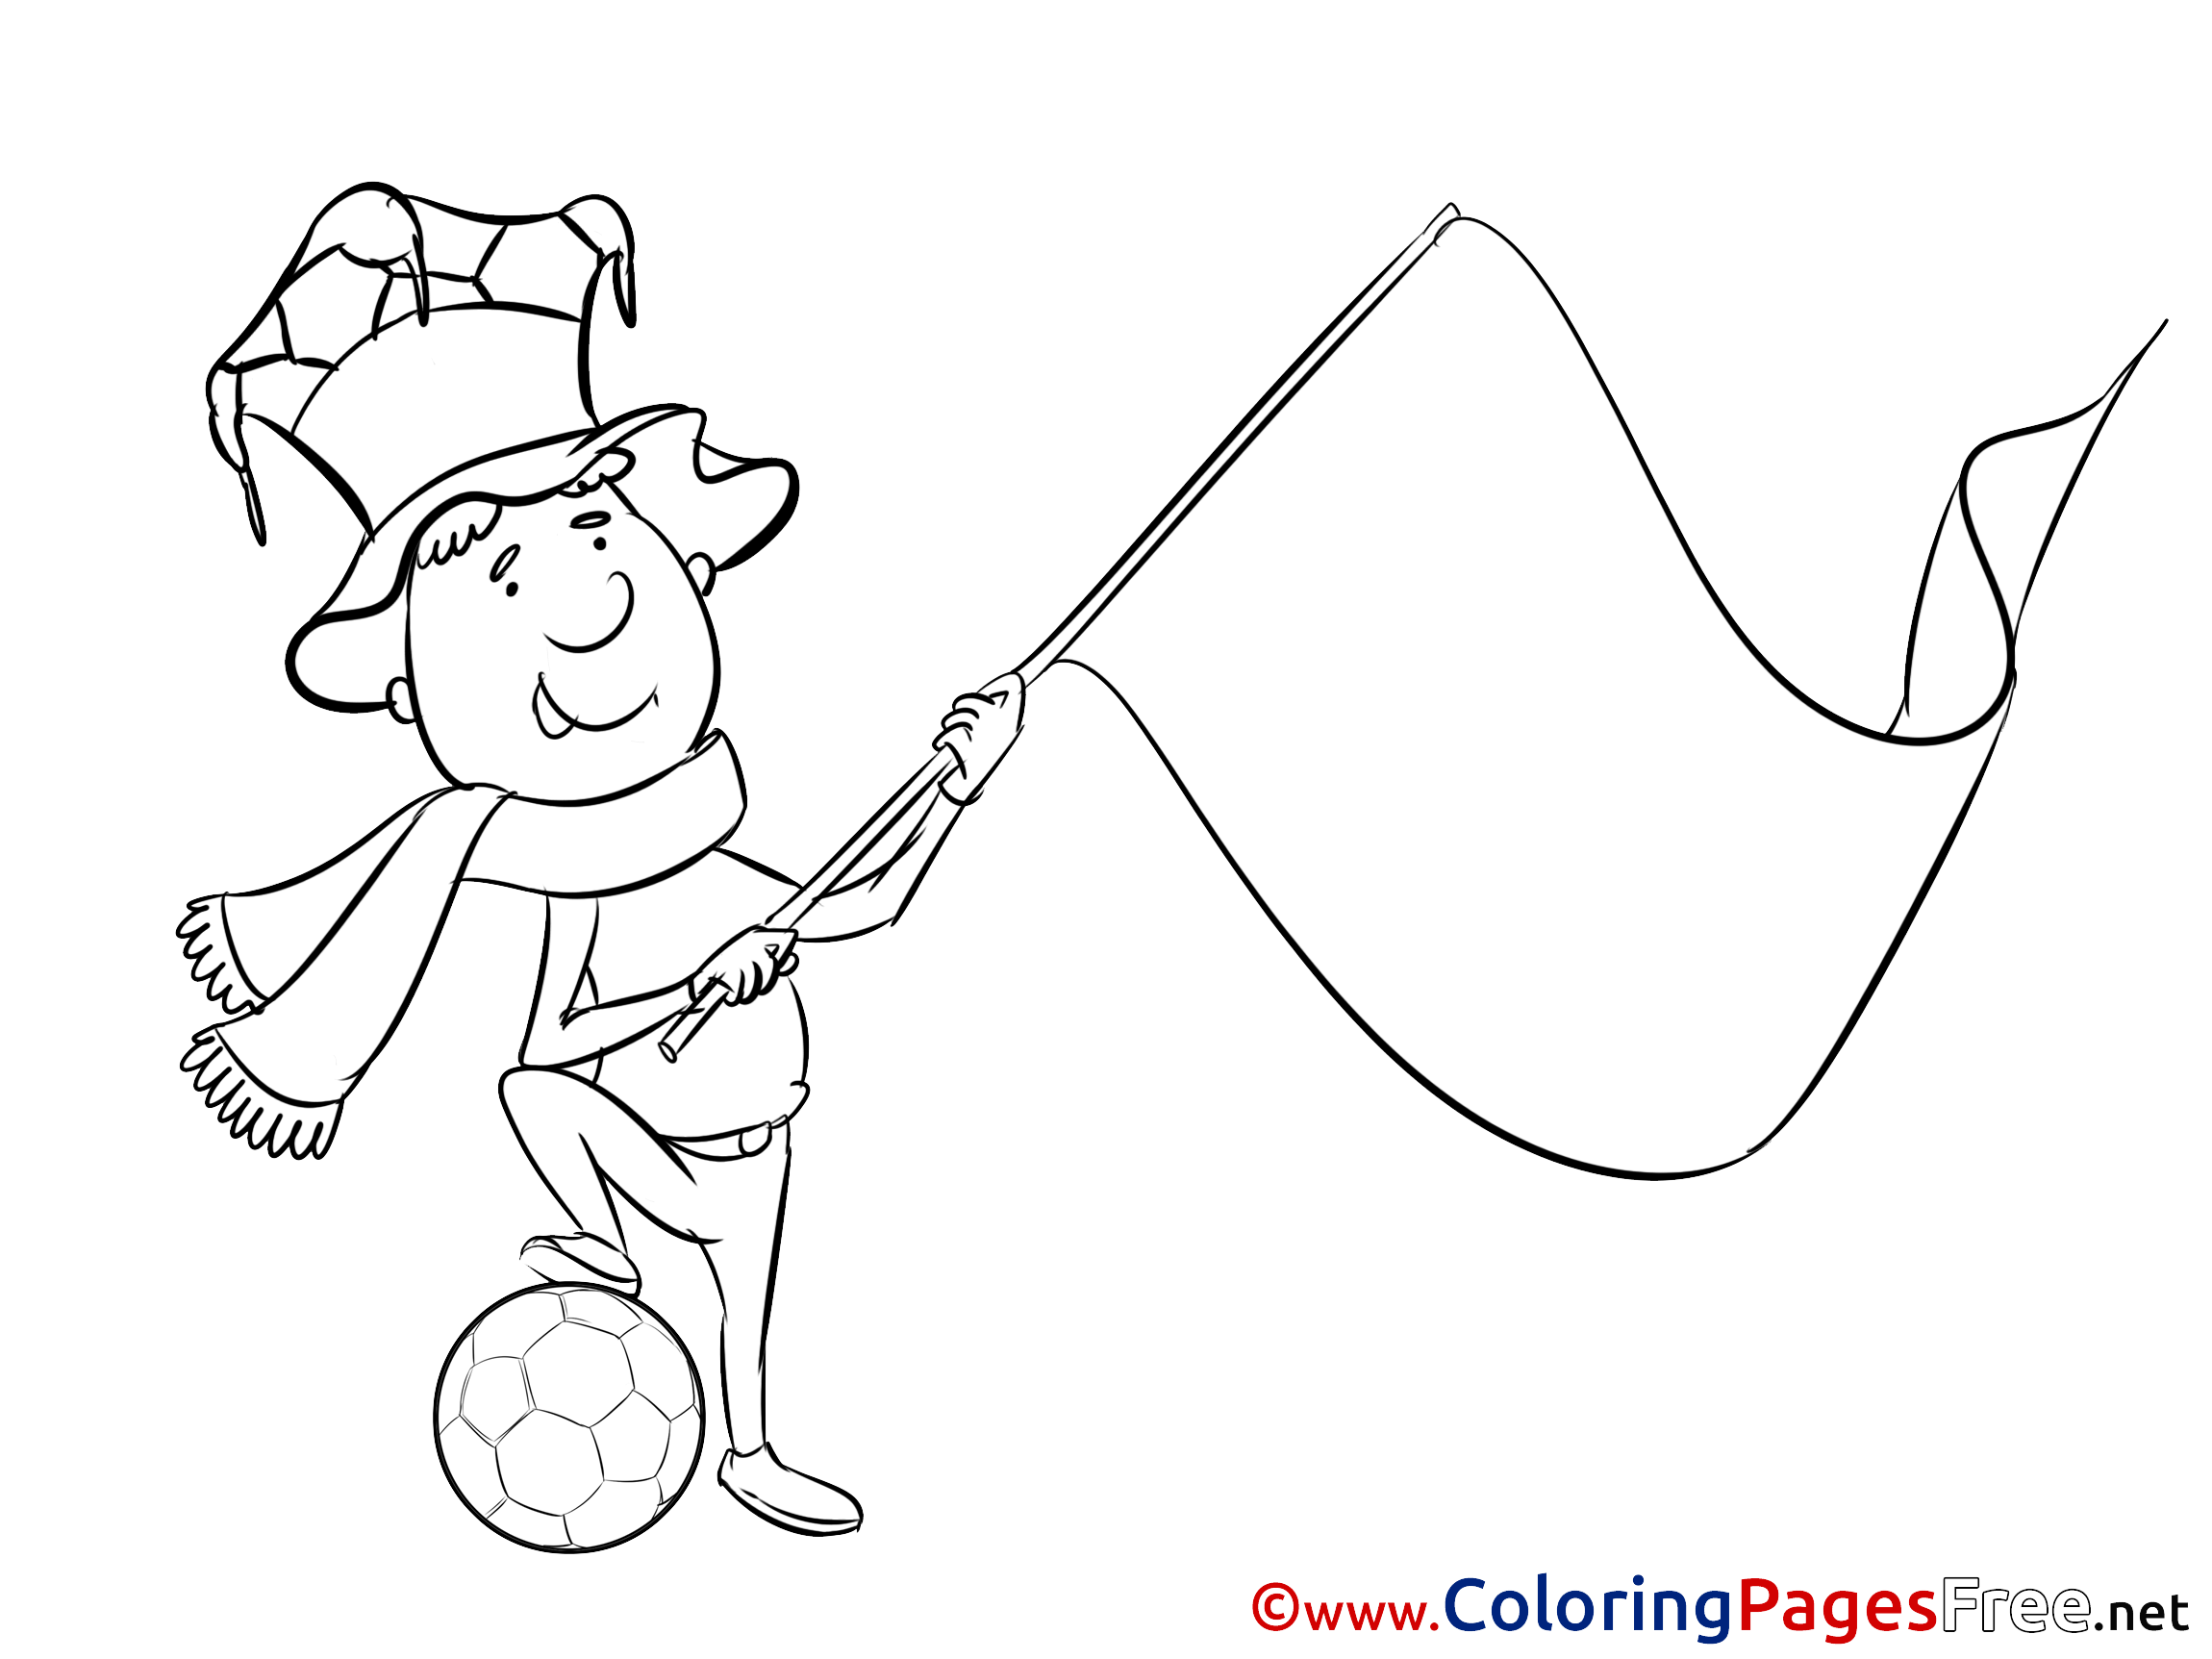 soccer flags coloring pages - photo#8